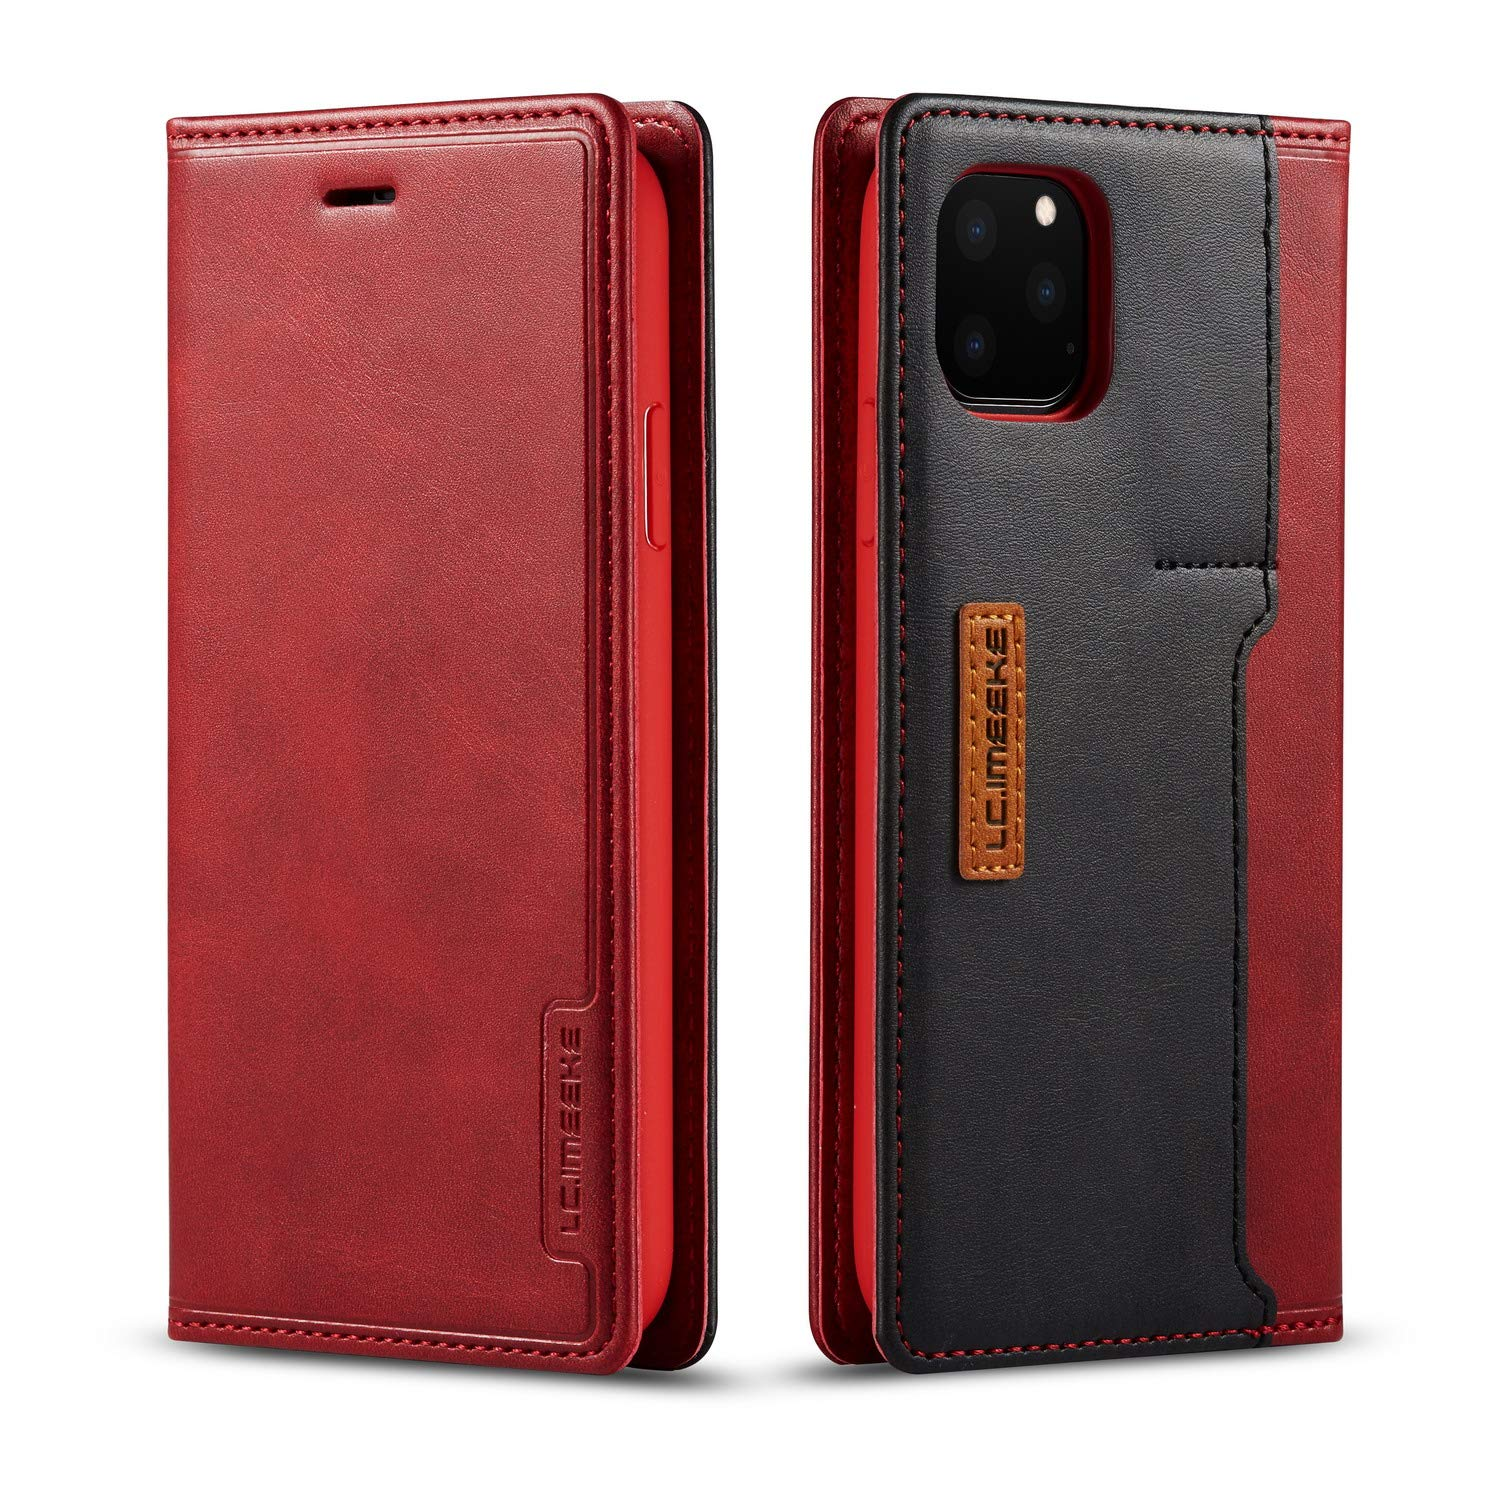 DEFBSC iPhone 11 Pro Flip Wallet Case with Card Holder,Magnetic Closure Premium PU Leather Folio Flip Case with Kickstand for iPhone 11 Pro 5.8 Inch,Red